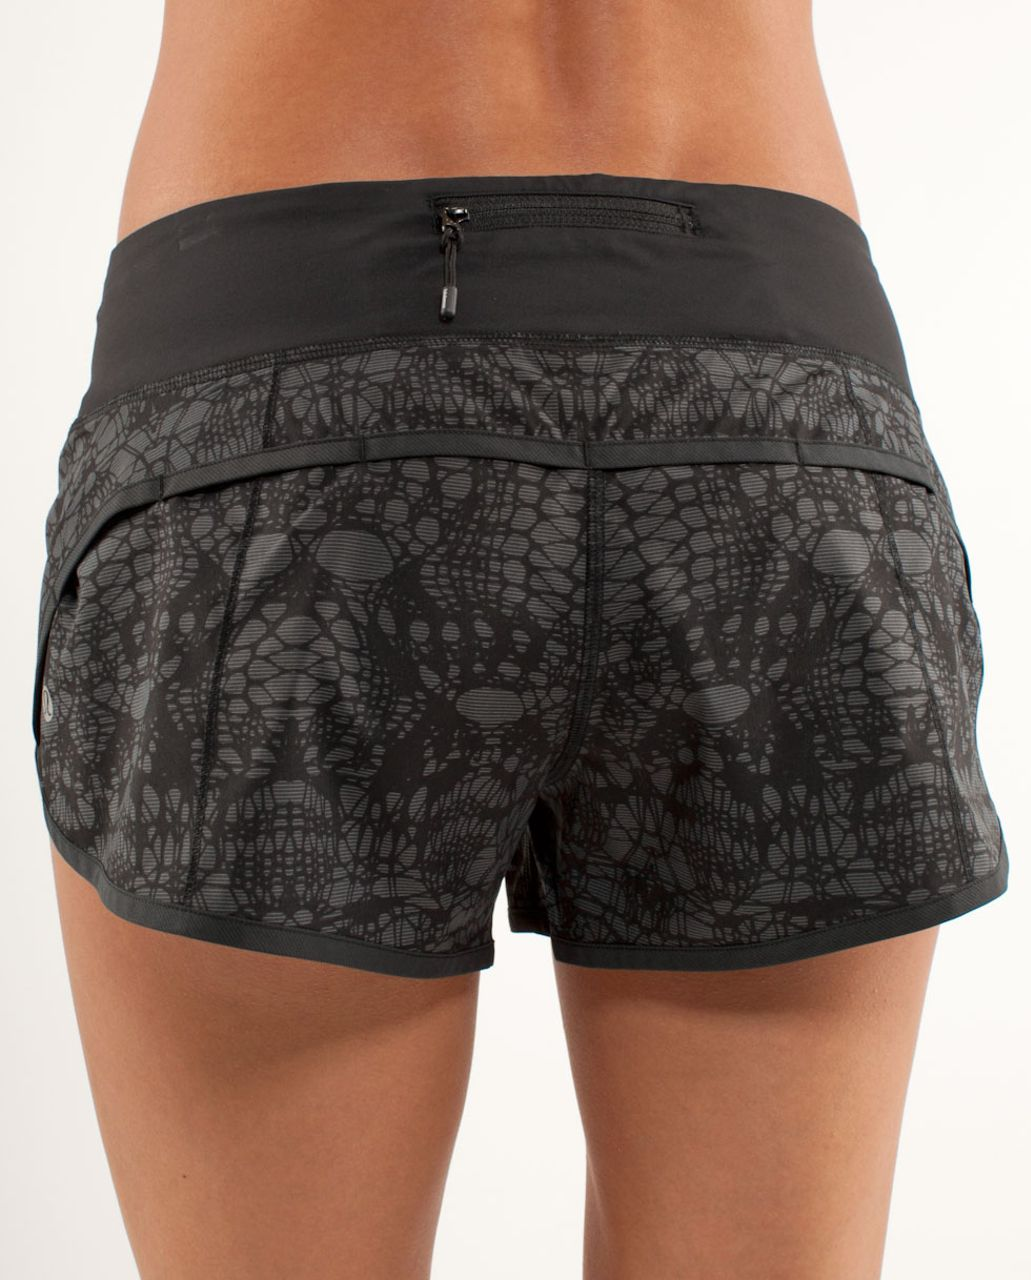 Lululemon Run:  Speed Short - Black White Microstripe Black Glacier Lace / Black